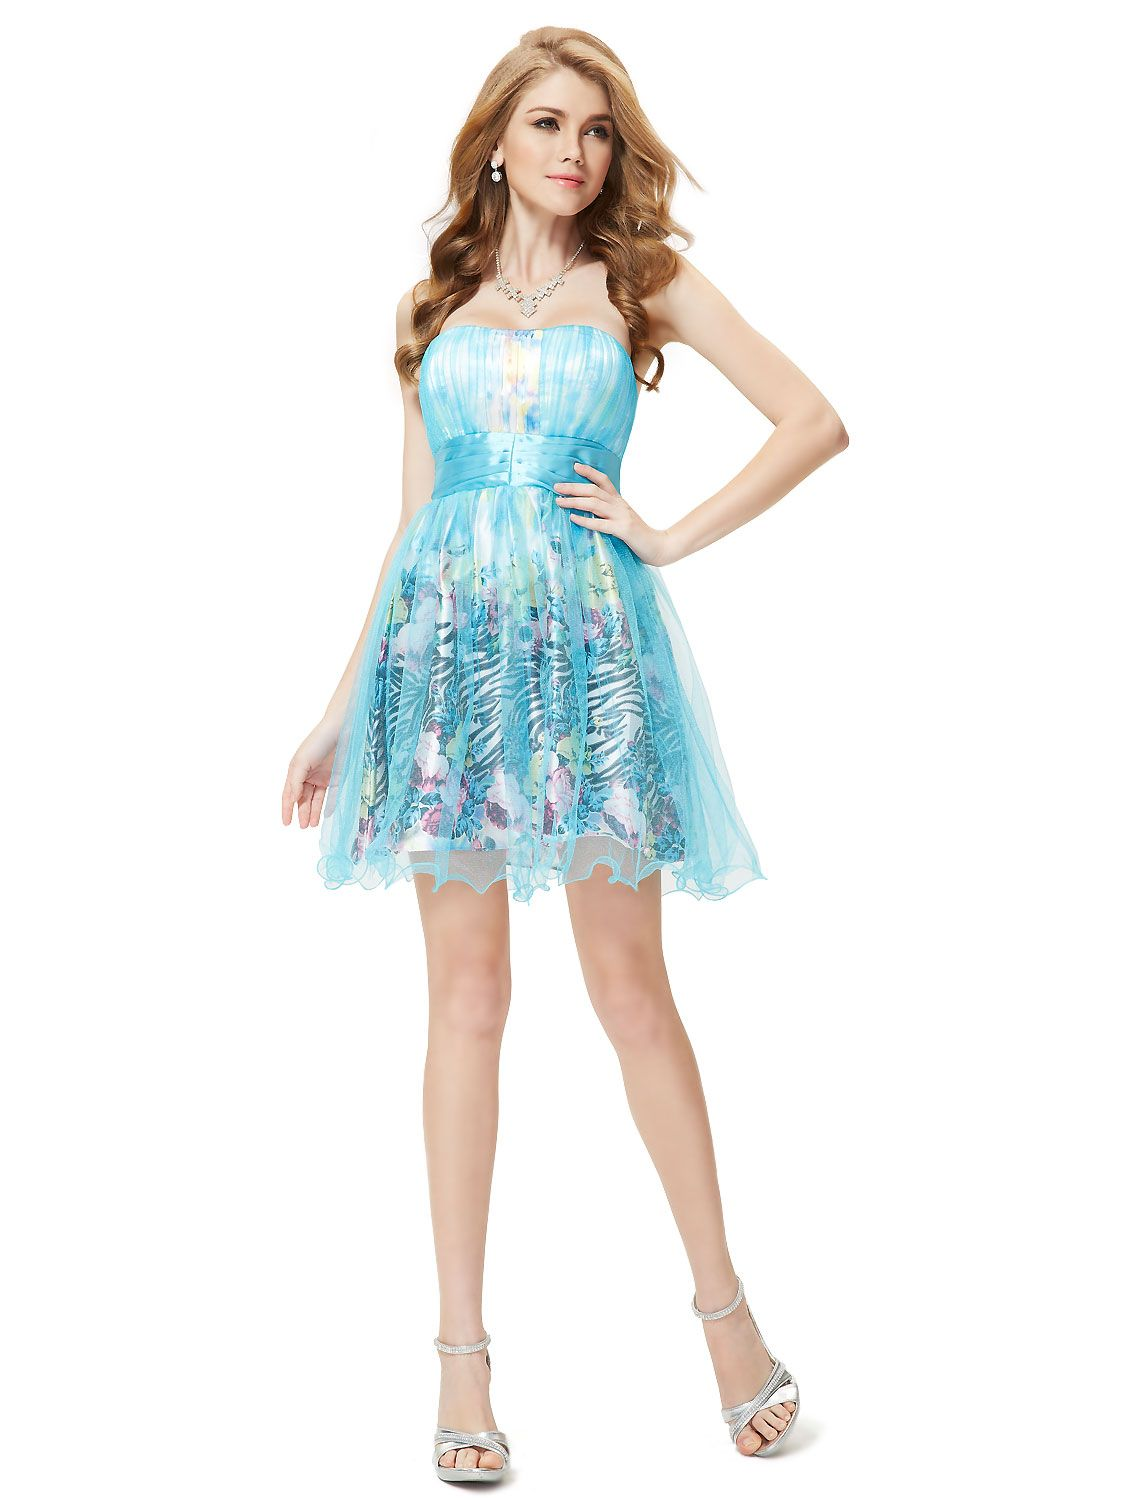 Strapless party dress with blue sheer mesh outer layer and floral ...